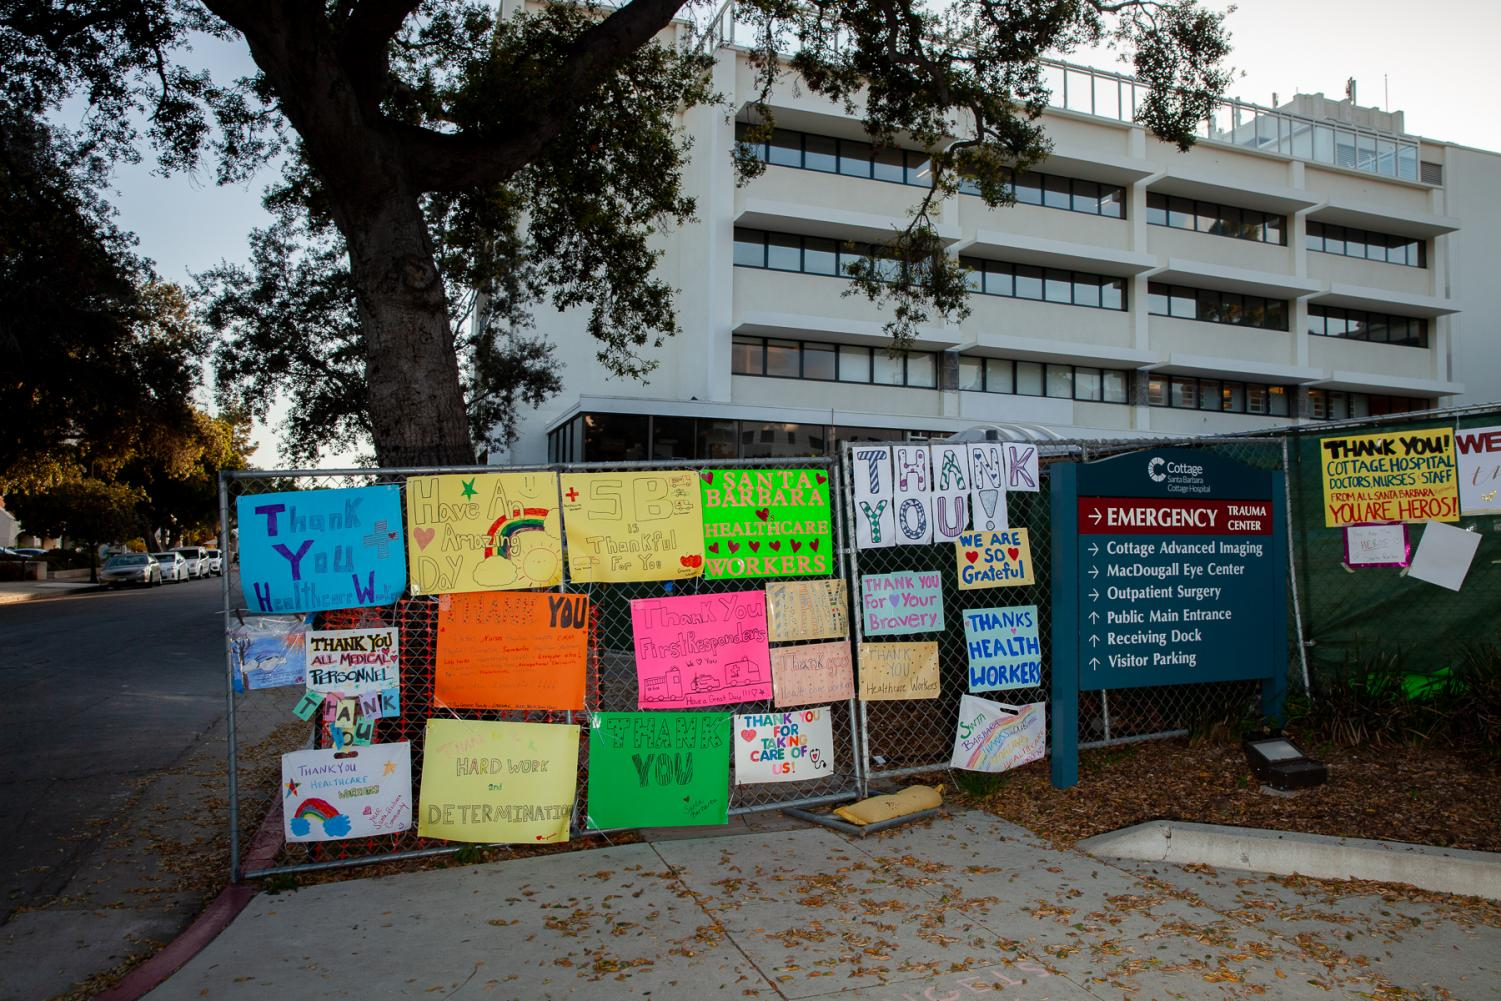 A collection of posters thanking medical workers decorate a construction fence surrounding the eastern quarter of Cottage Hospital in Santa Barbara, Calif.